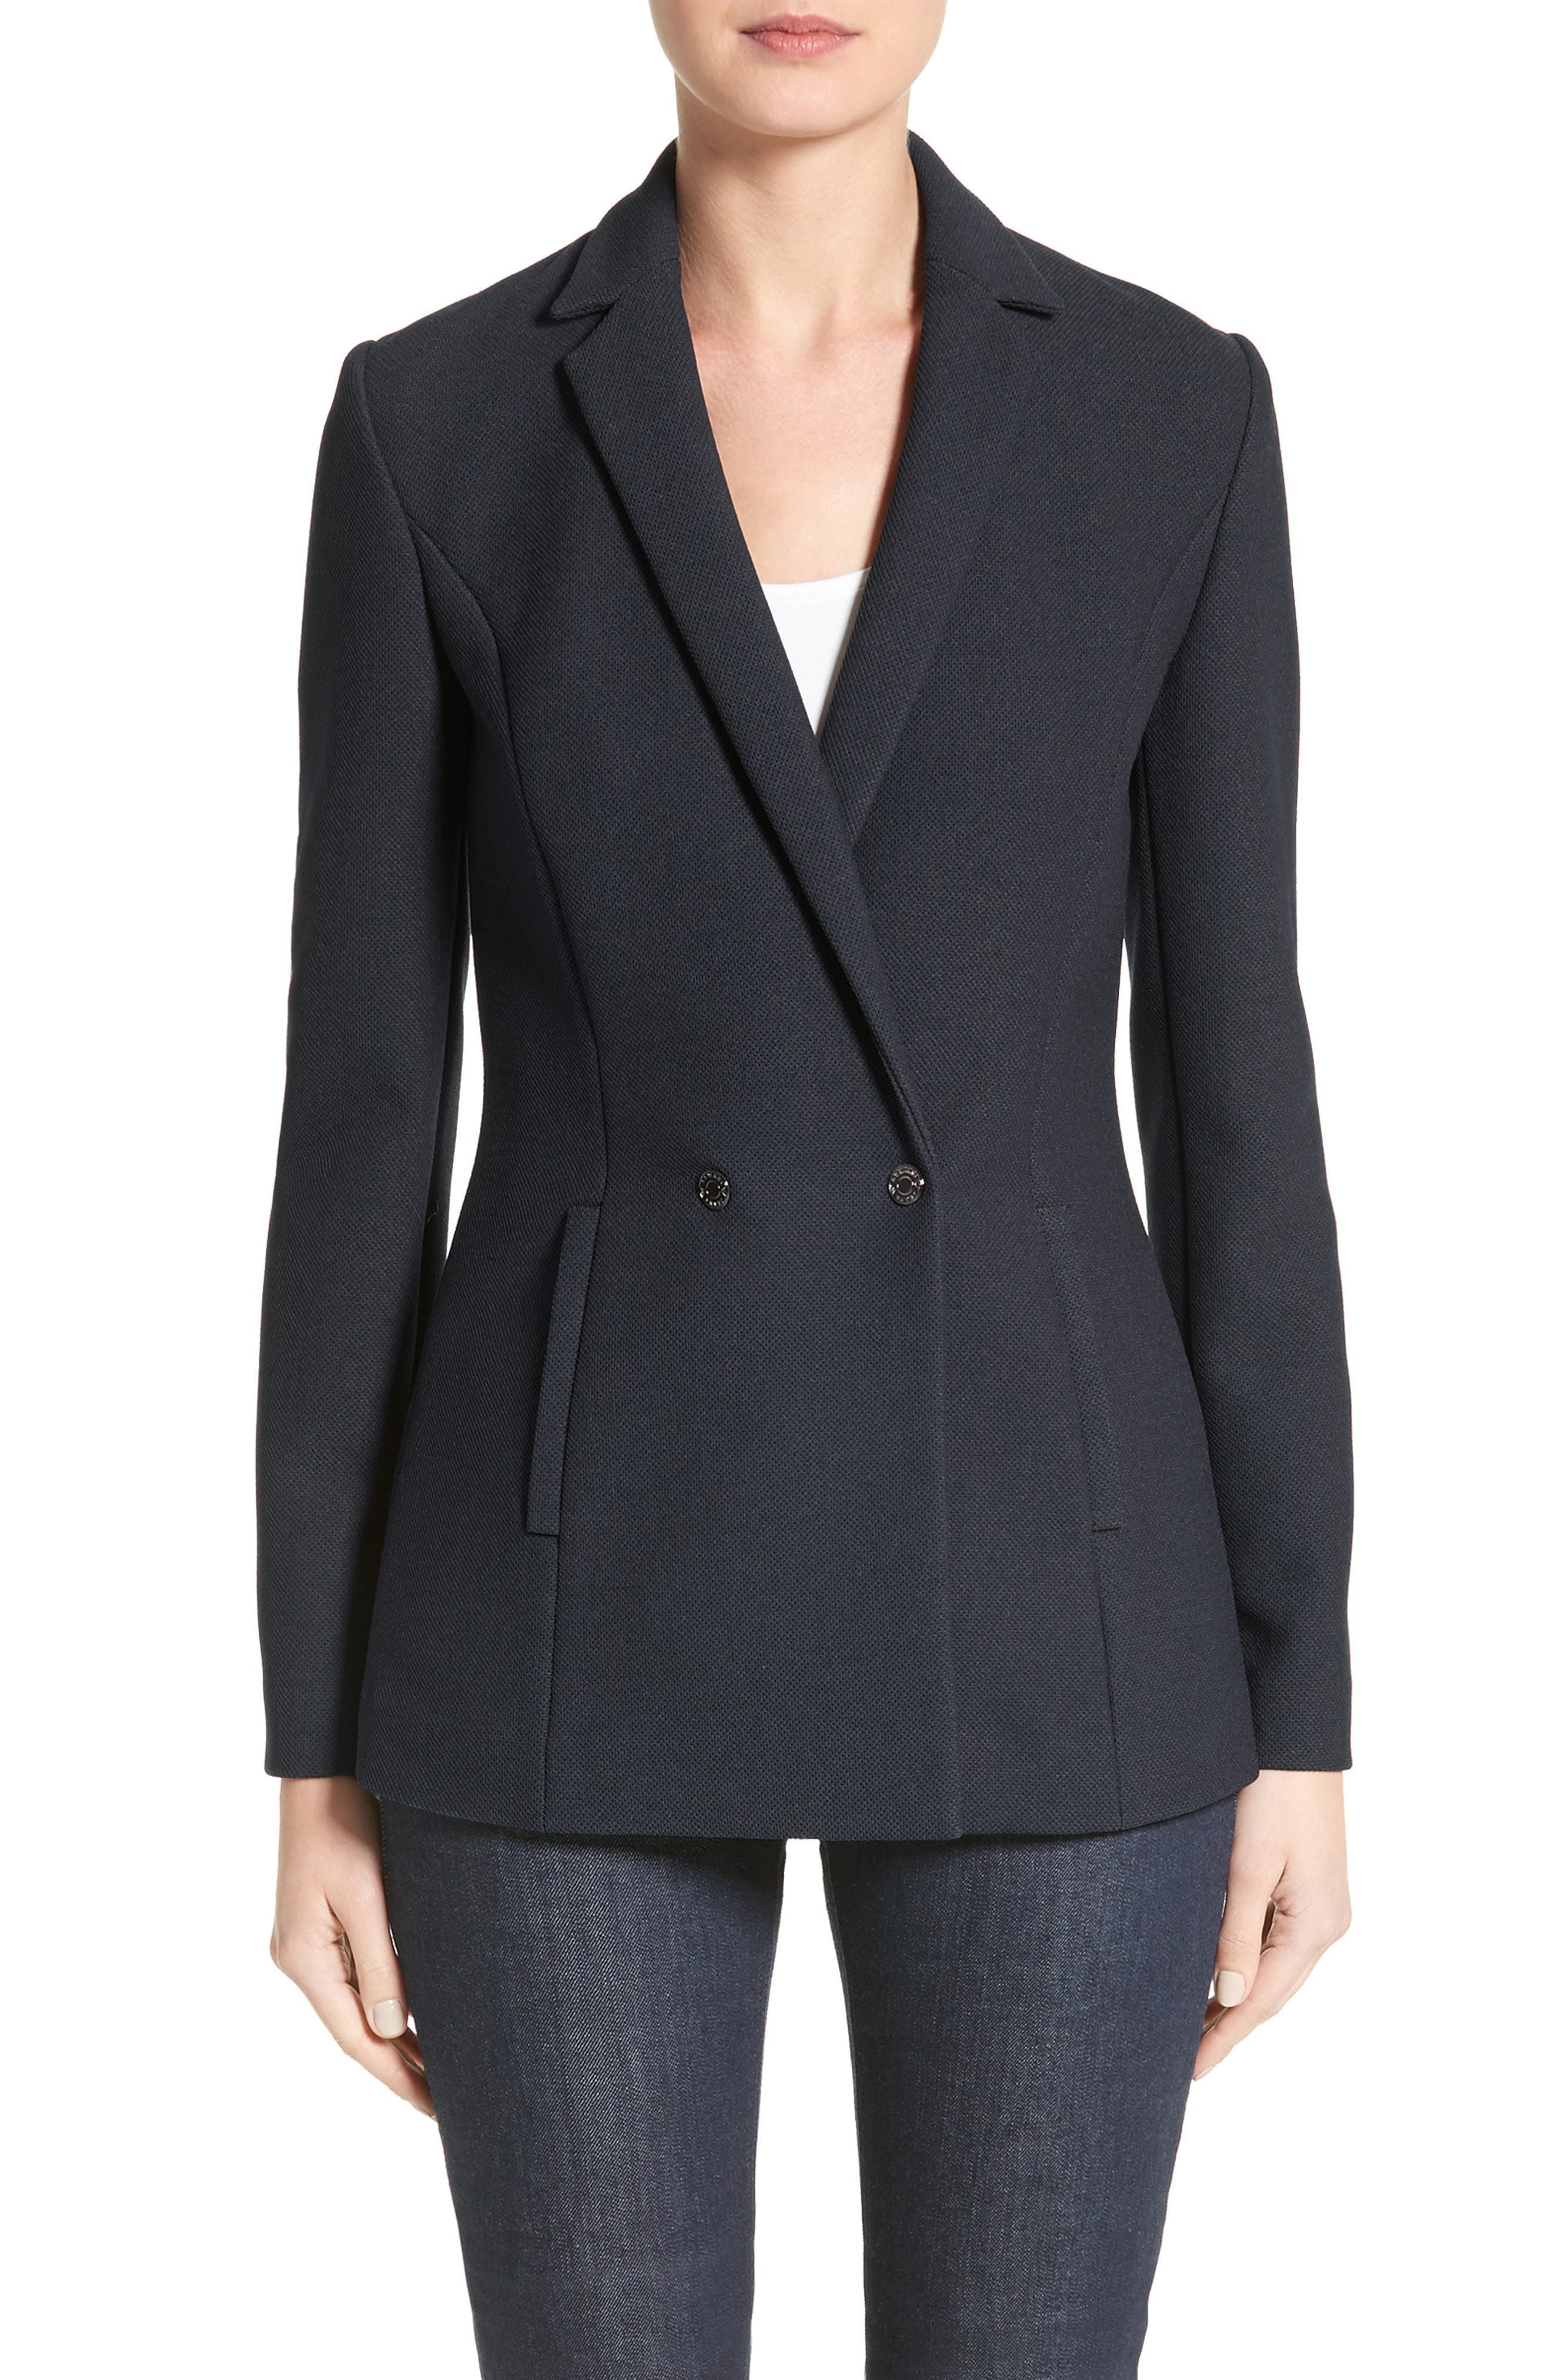 Armani Jeans Piqué Double Breasted Blazer,                         Main,                         color, Navy